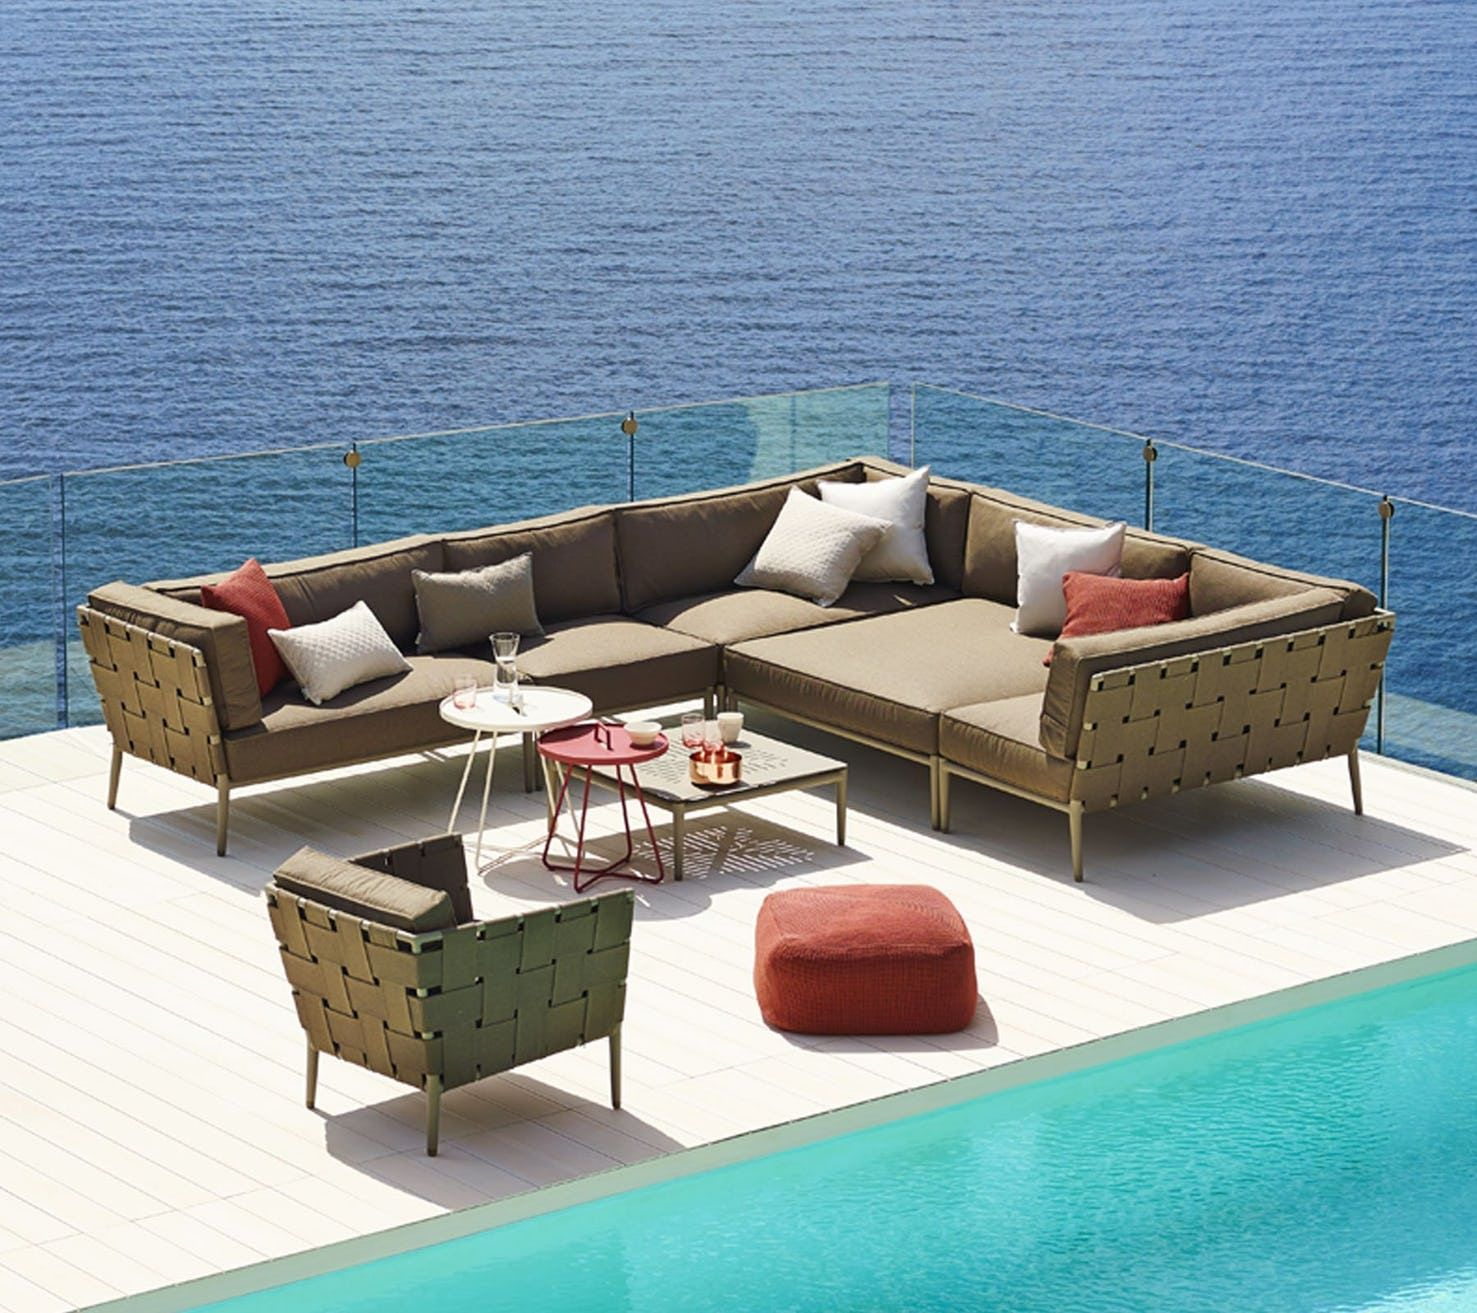 Conic Lounge Chair By Cane Line Outdoor Lounge Furniture Lounge Furniture Contemporary Furniture Design